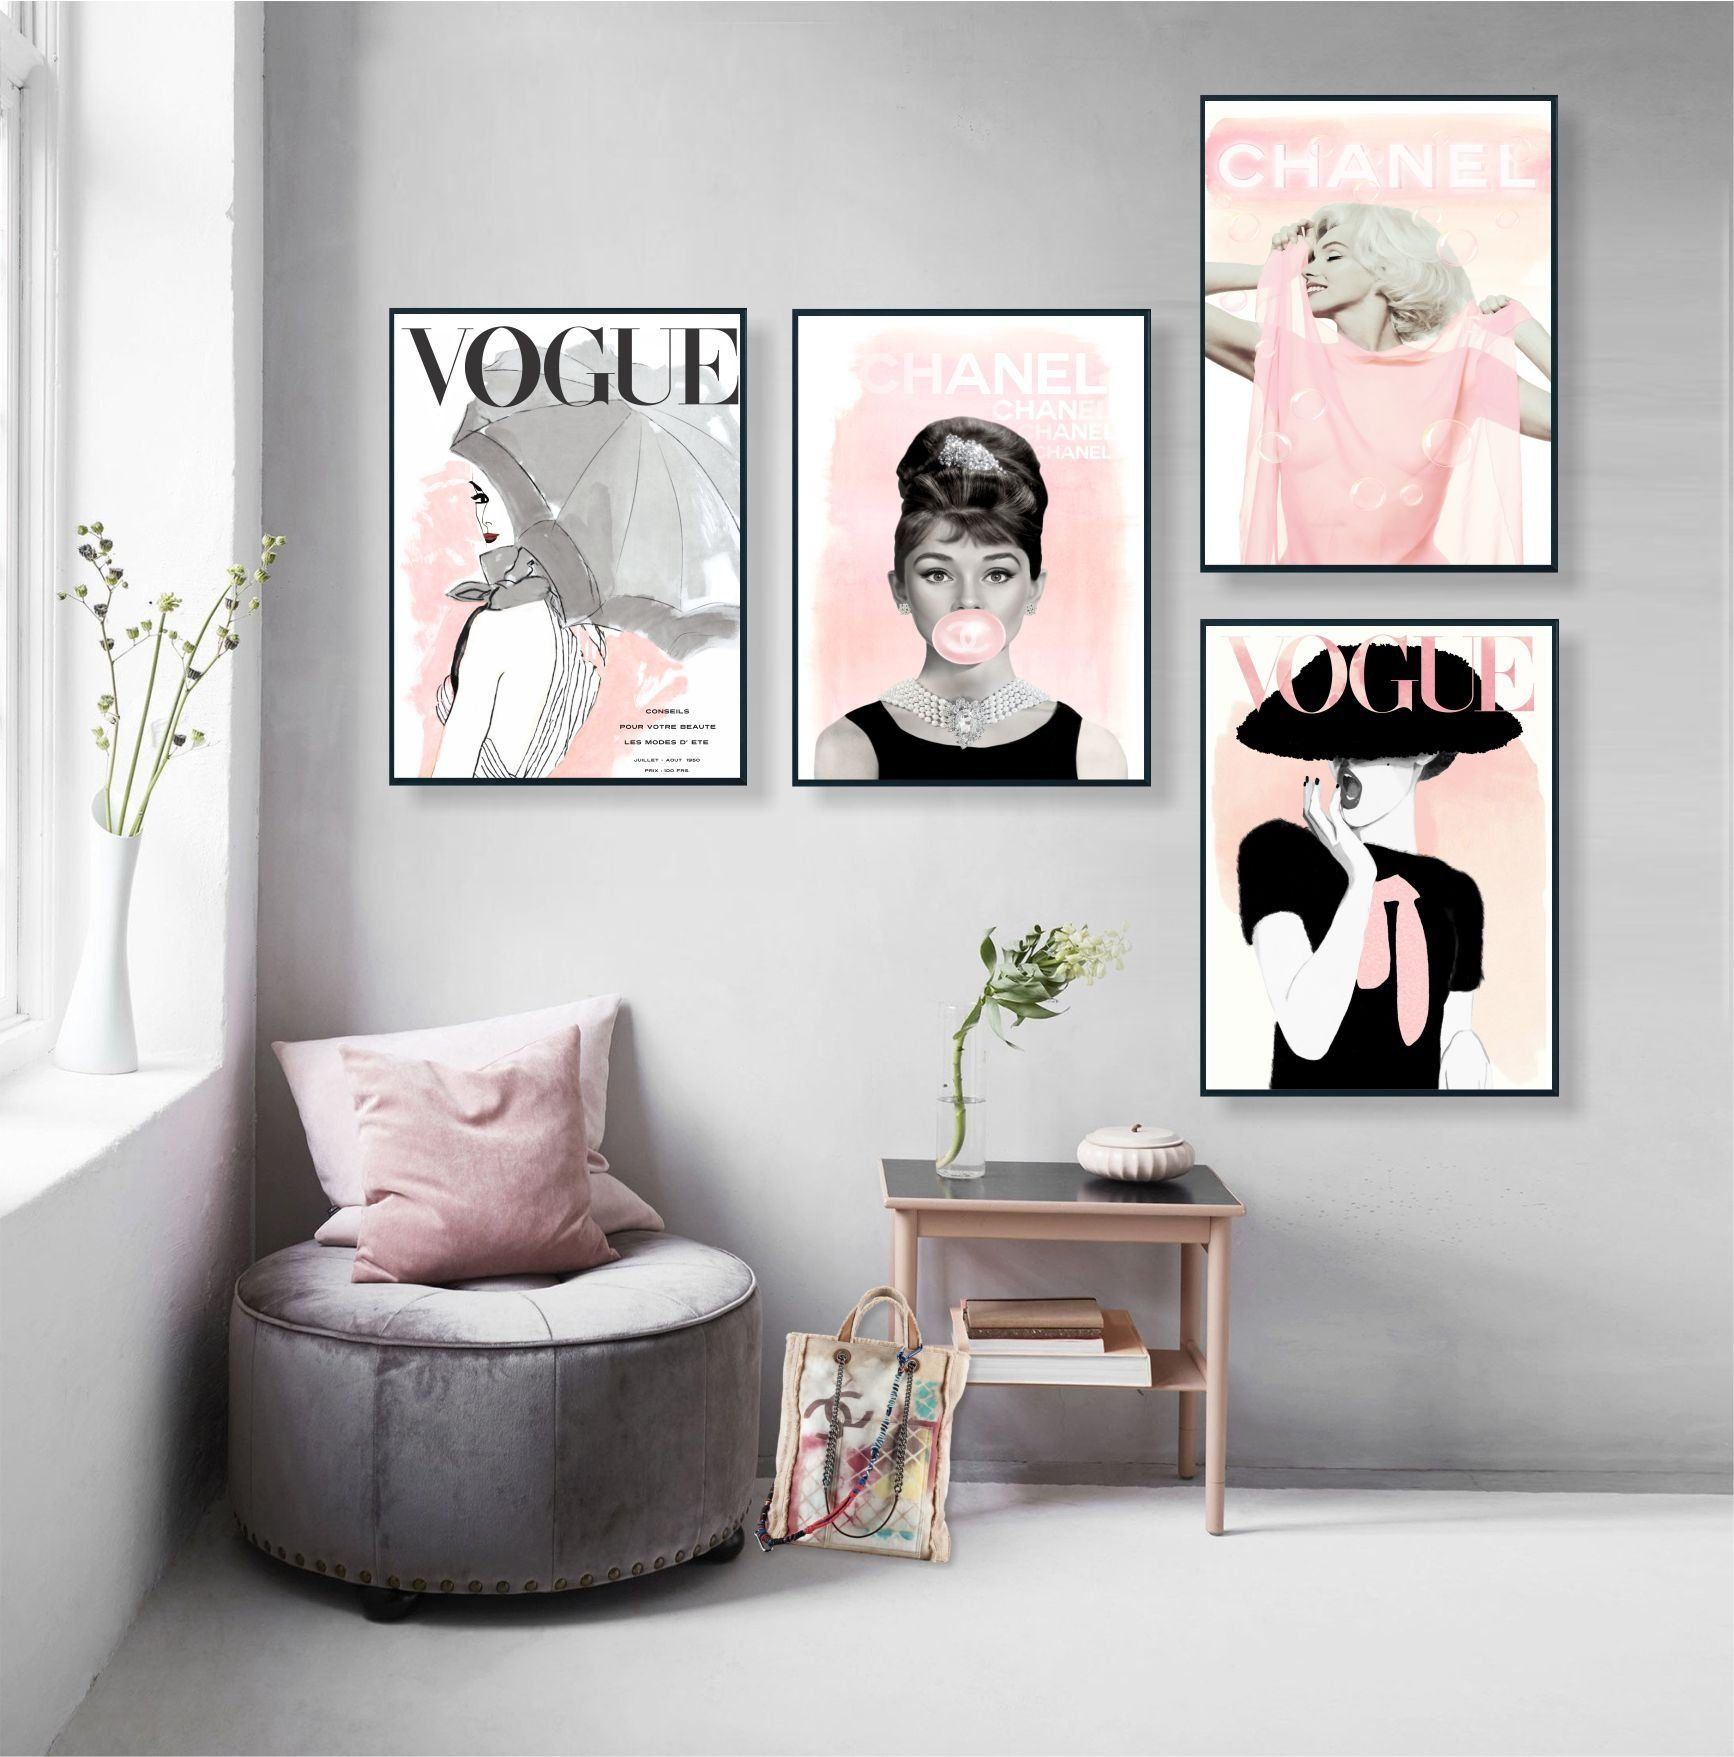 Vogue Posters Audrey Hepburn Print Set Of 4 Fashion Wall Art Vogue Cover Magazine Fashion Decor Vogue Print Gift For Her Decor Styles Fashion Room Decor